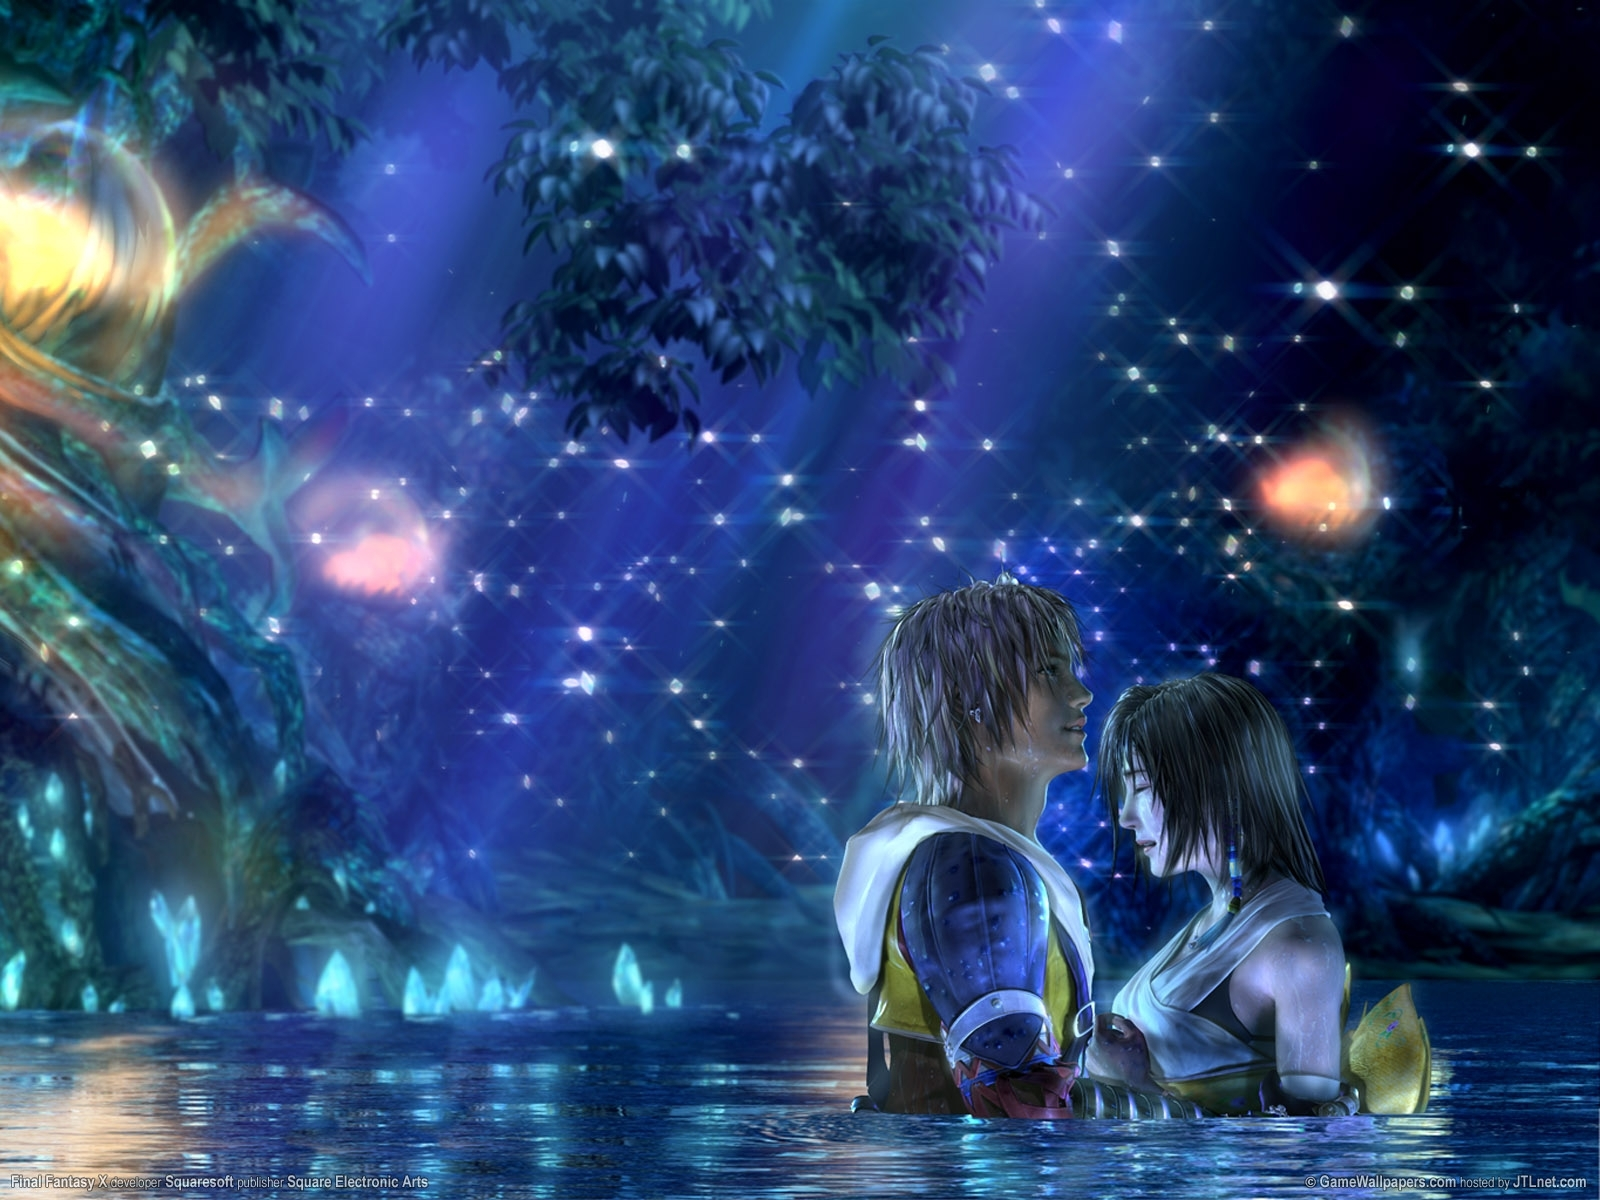 wallpaper final fantasy x 07 1600 - 10 000 fonds d'écran hd gratuits